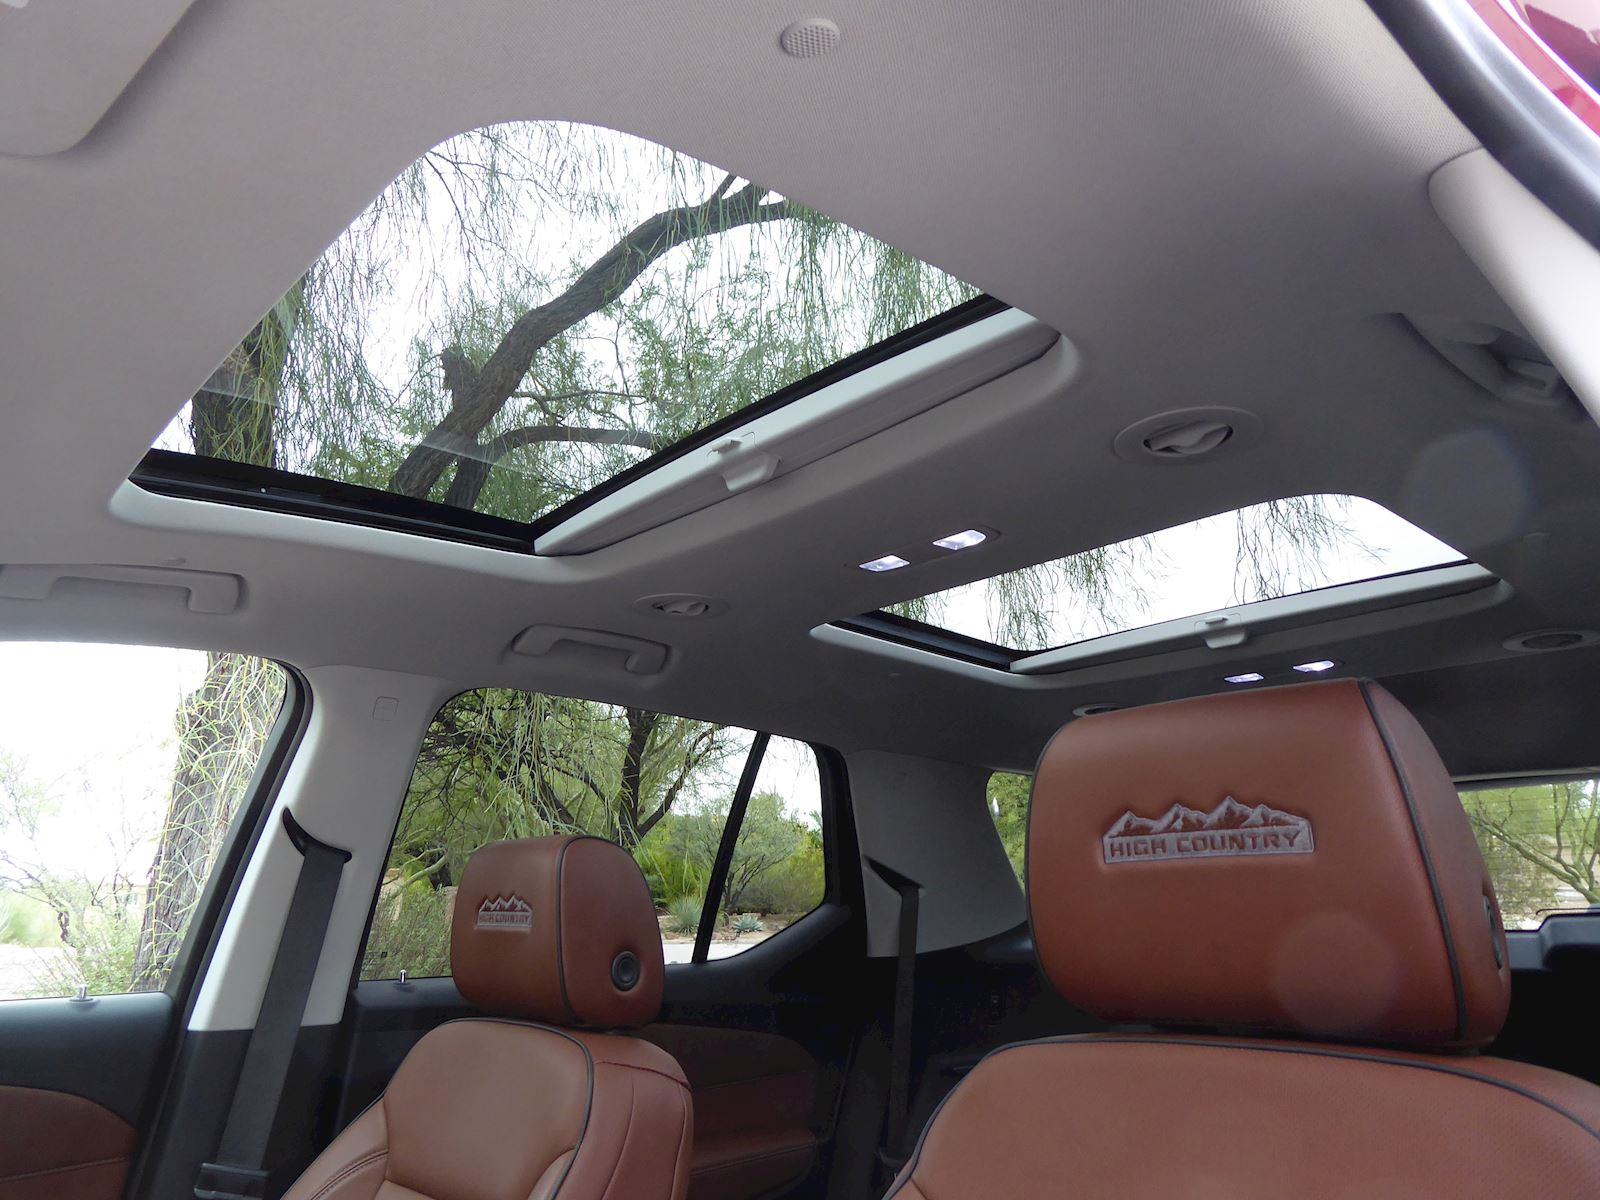 2020 Chevrolet Traverse interior panoramic sunroof